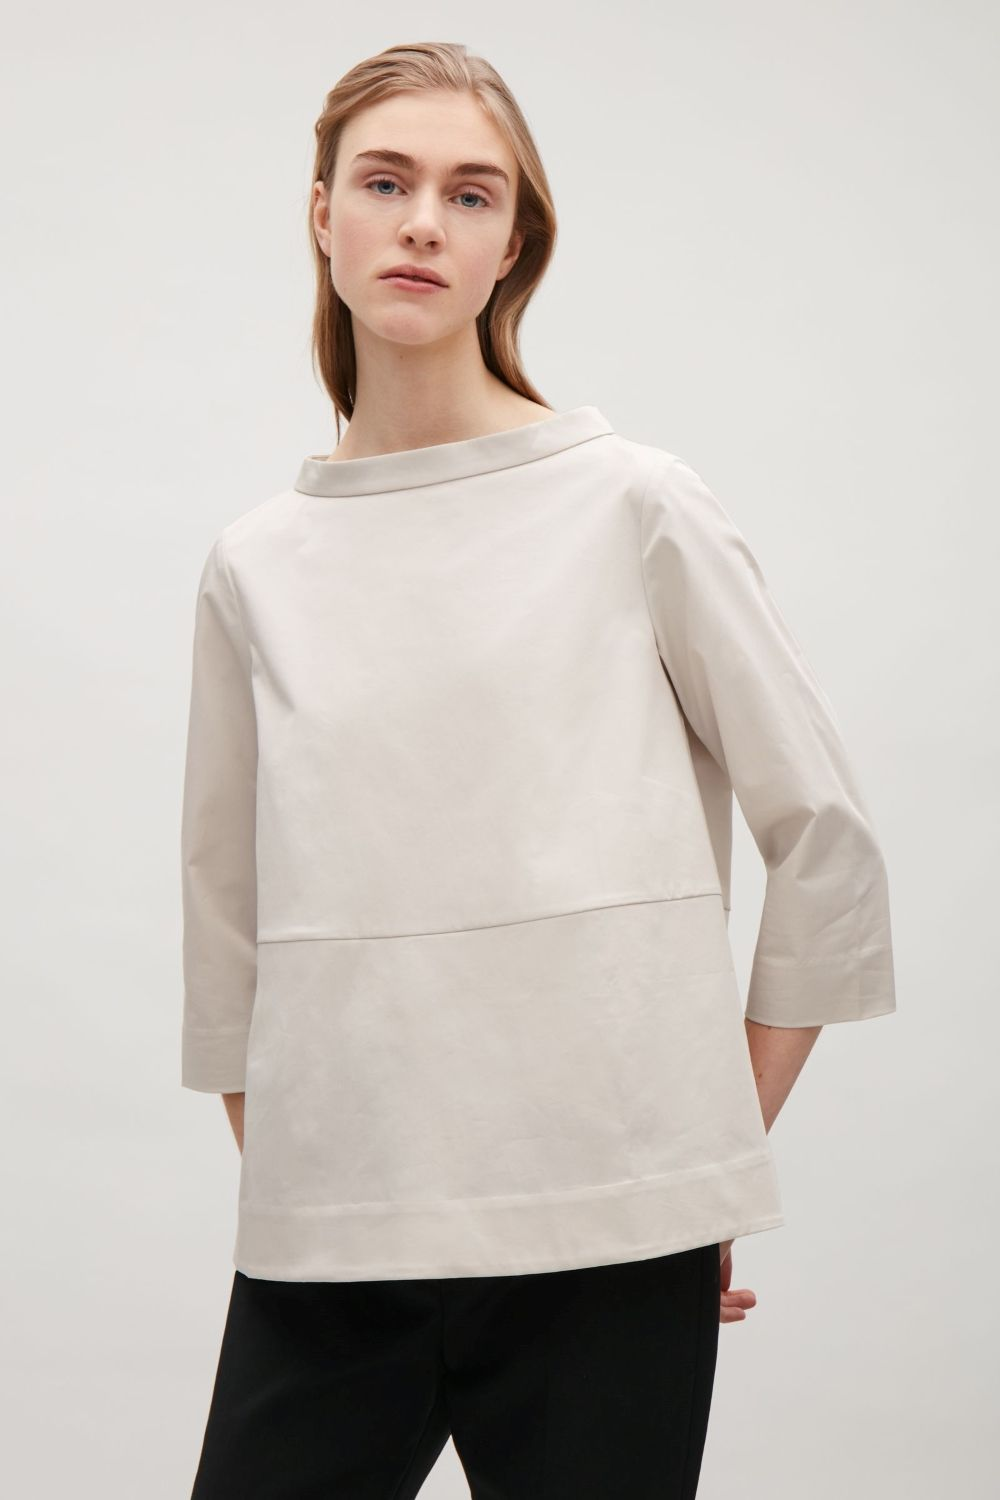 Made from crisp fabric with a slight-stretch, this top has a wide neckline with a standing collar. Fitted on the shoulders, it is a flared shape with 3/4 sleeves and buttons along the back.